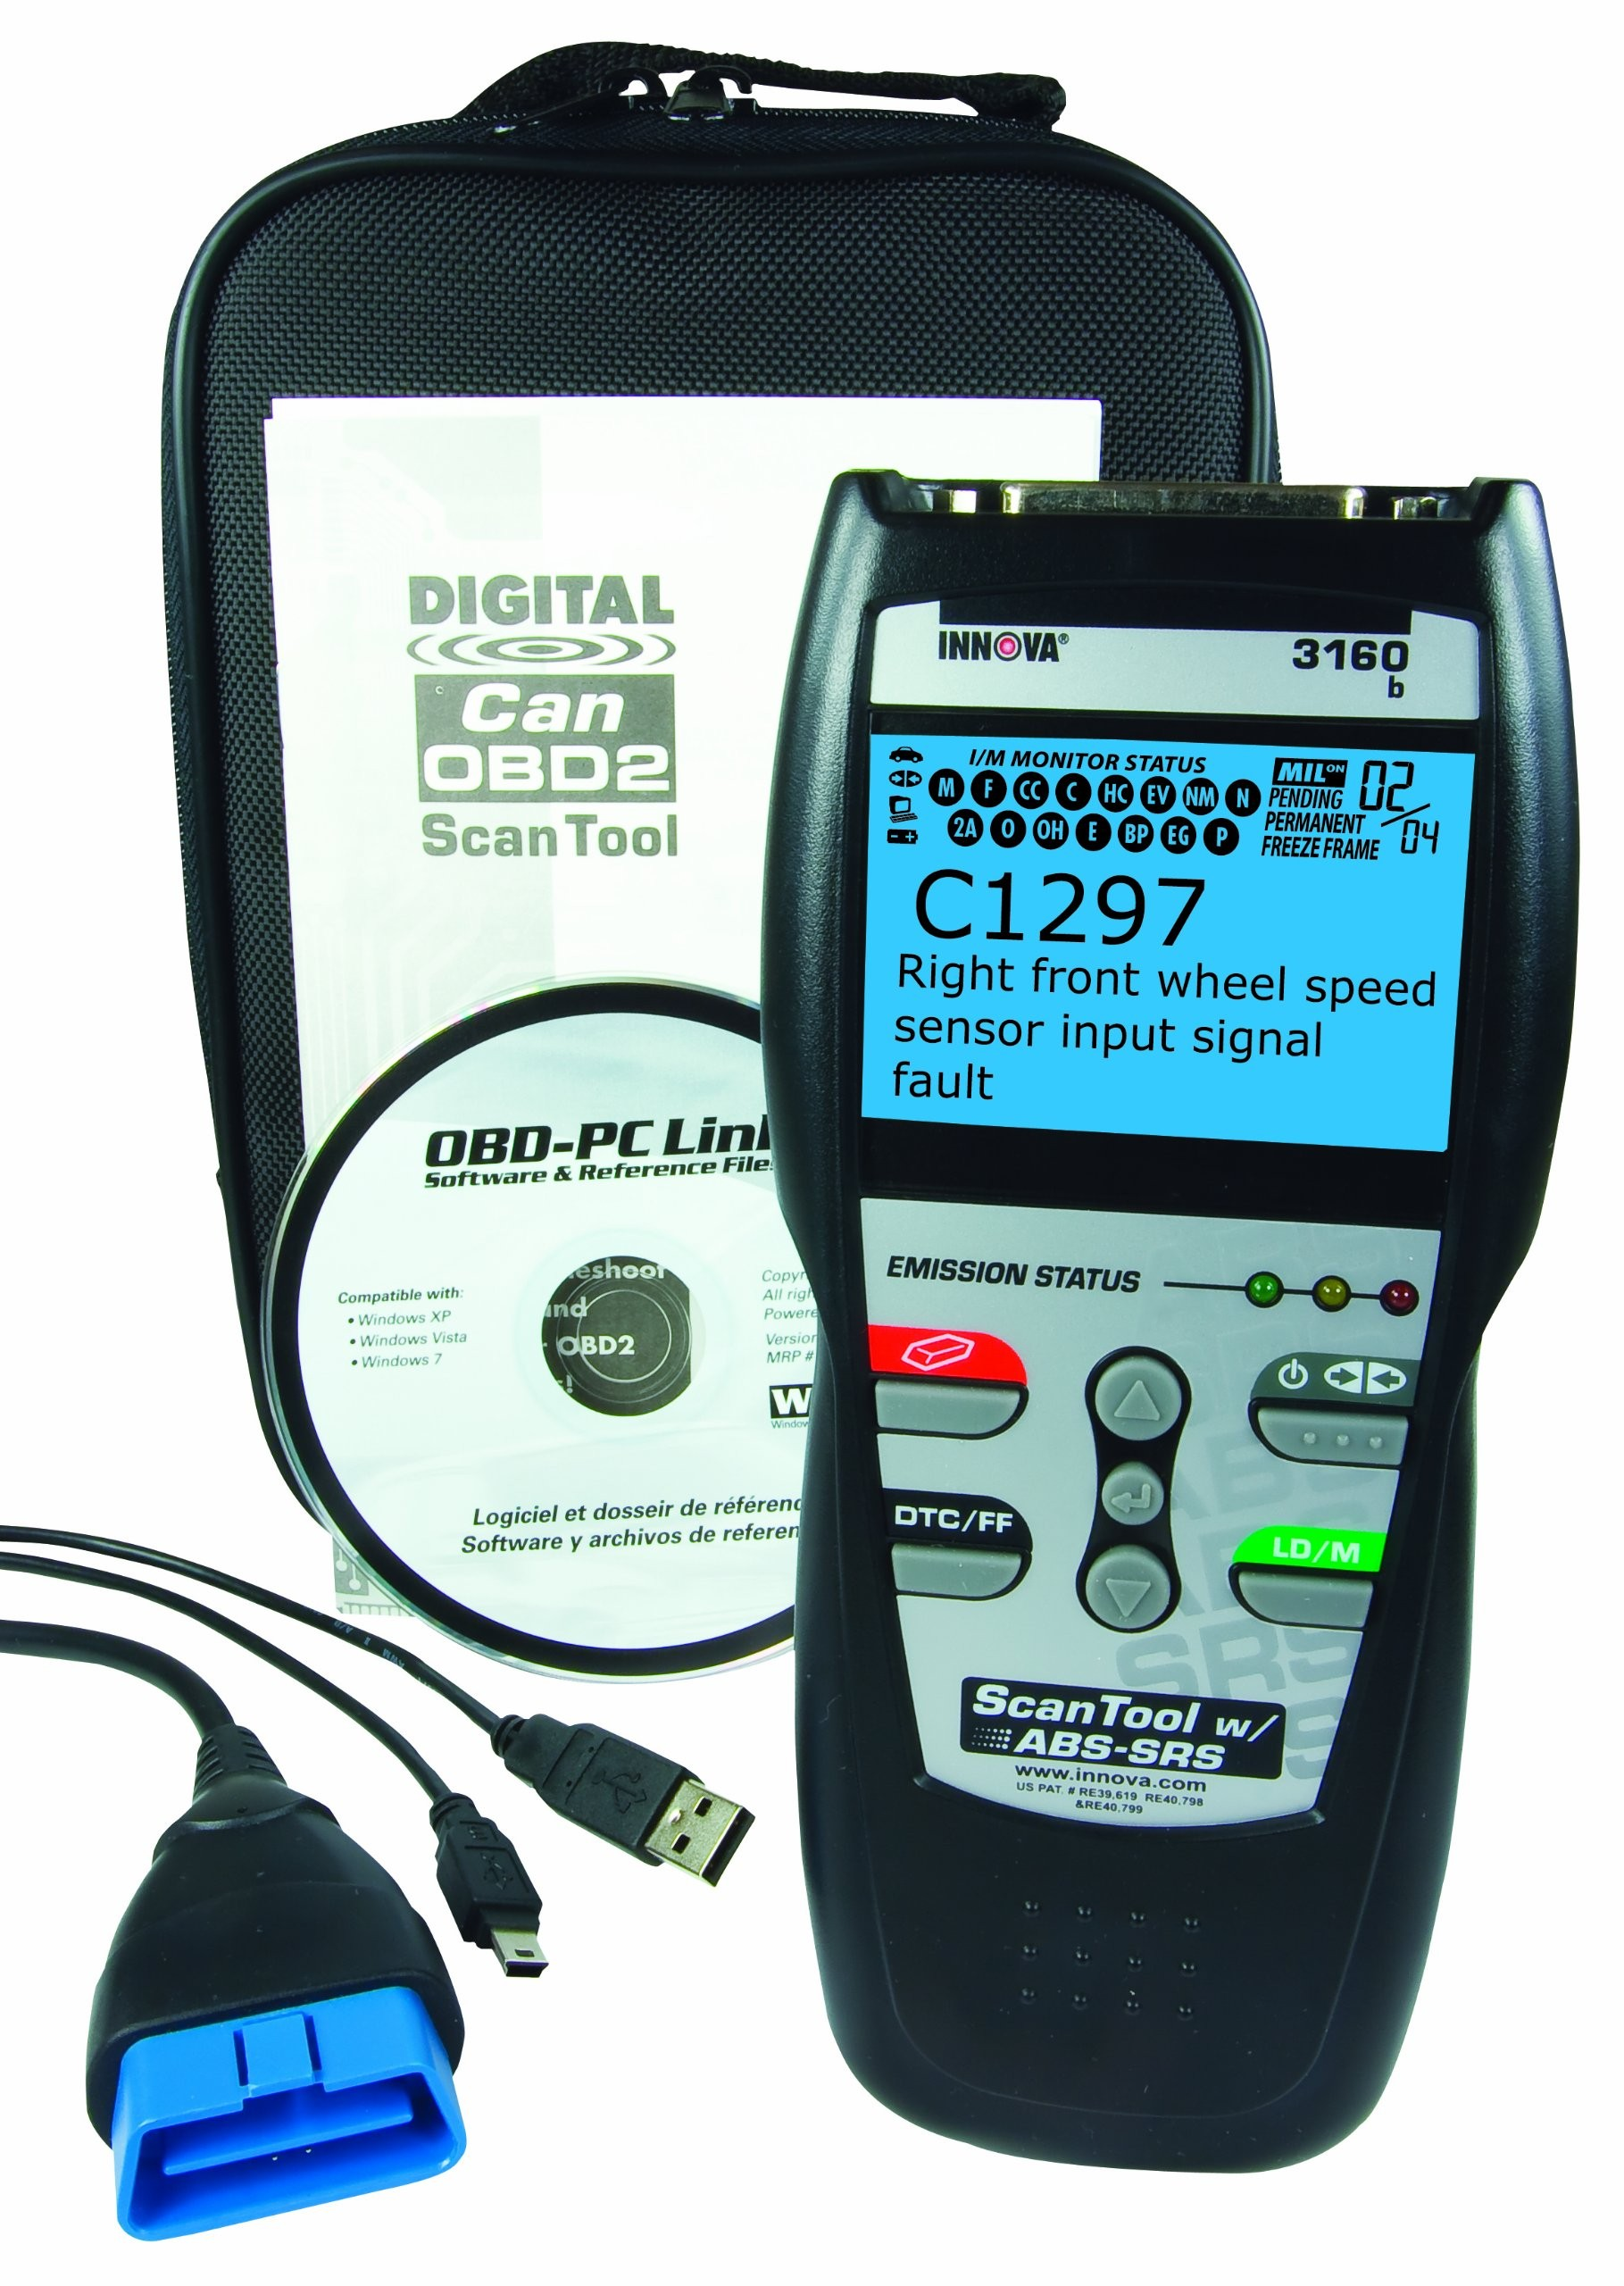 ignition switch and obd live data 12 volt winch 2 solenoid wiring diagram equus 3160 b innova abs srs professional obd2 diagnostic